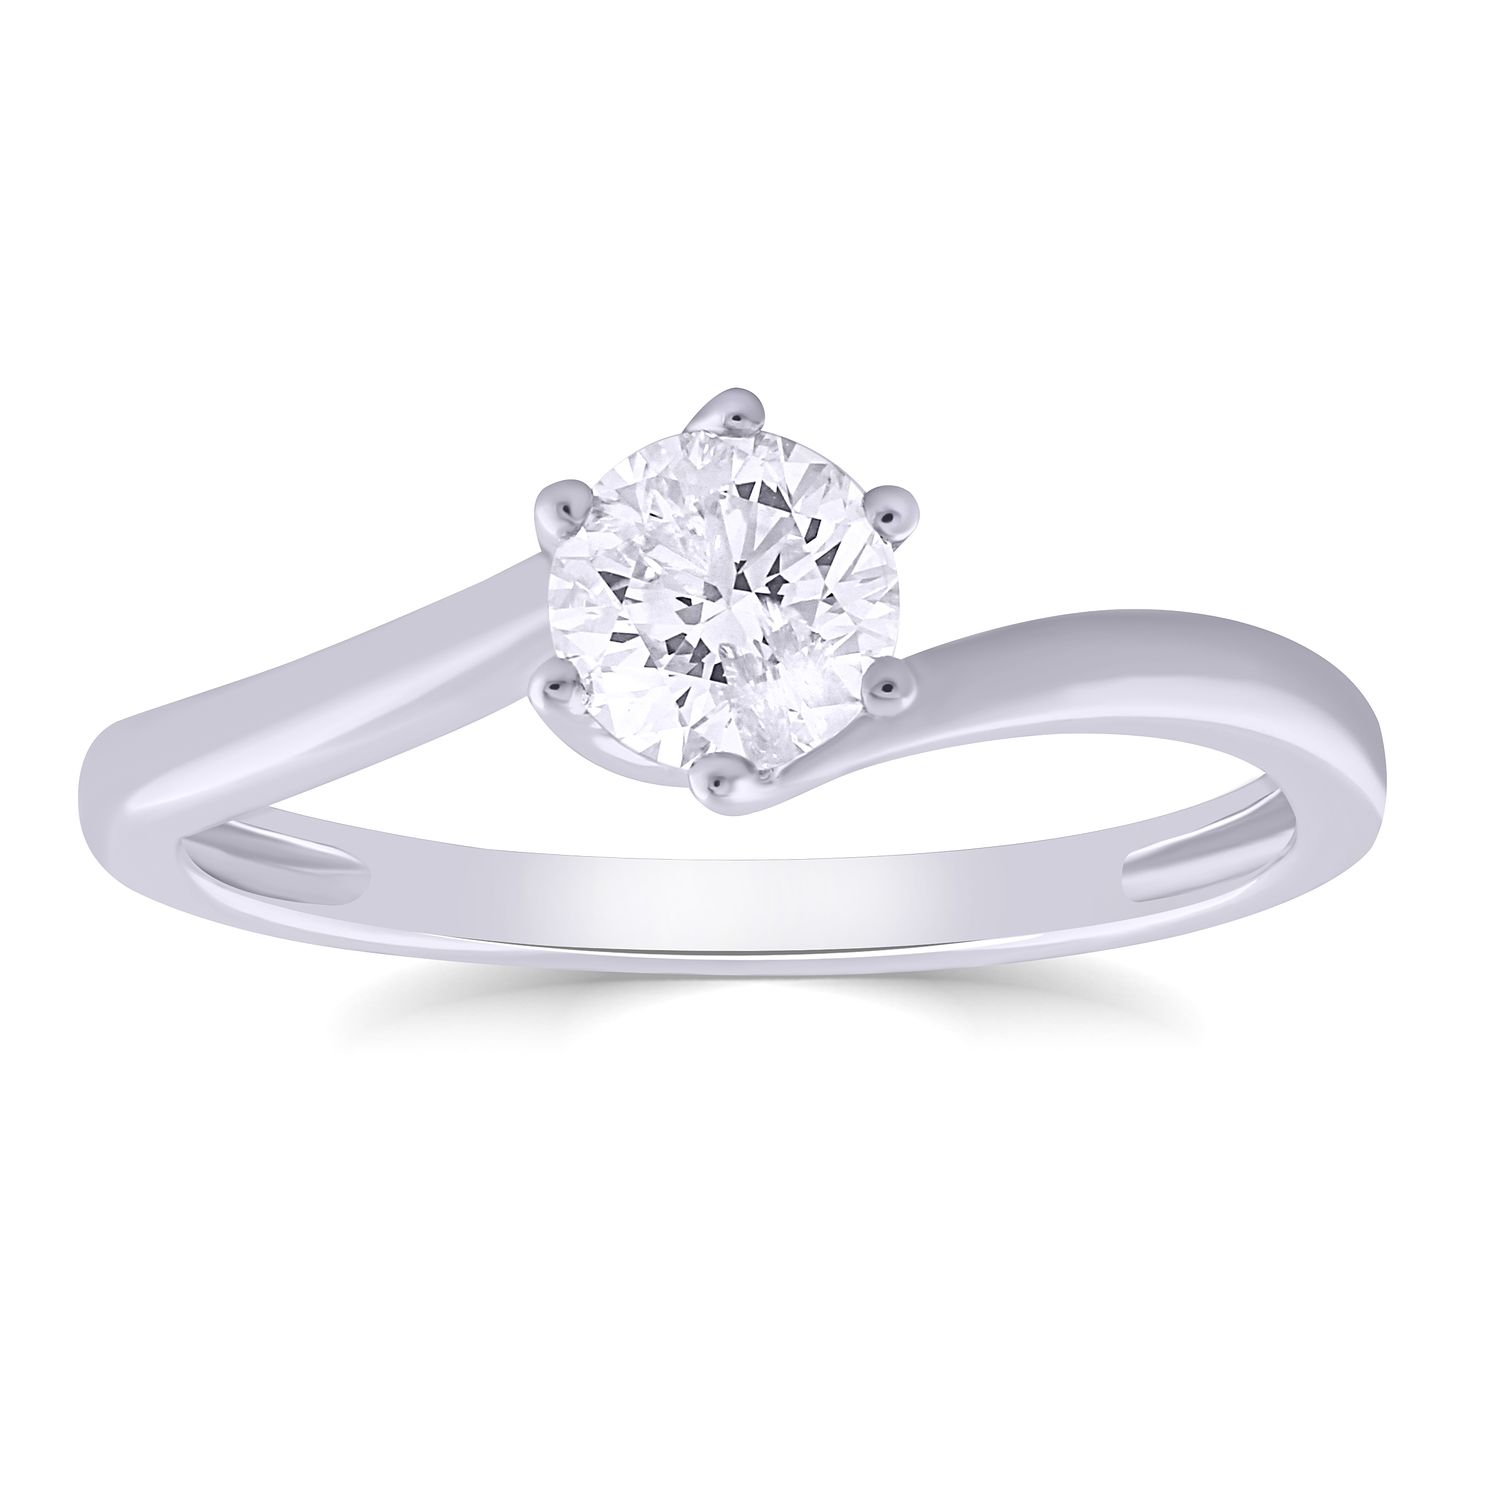 9ct White Gold 1/2ct Diamond 6 Claw Solitaire Ring - Product number 4987918